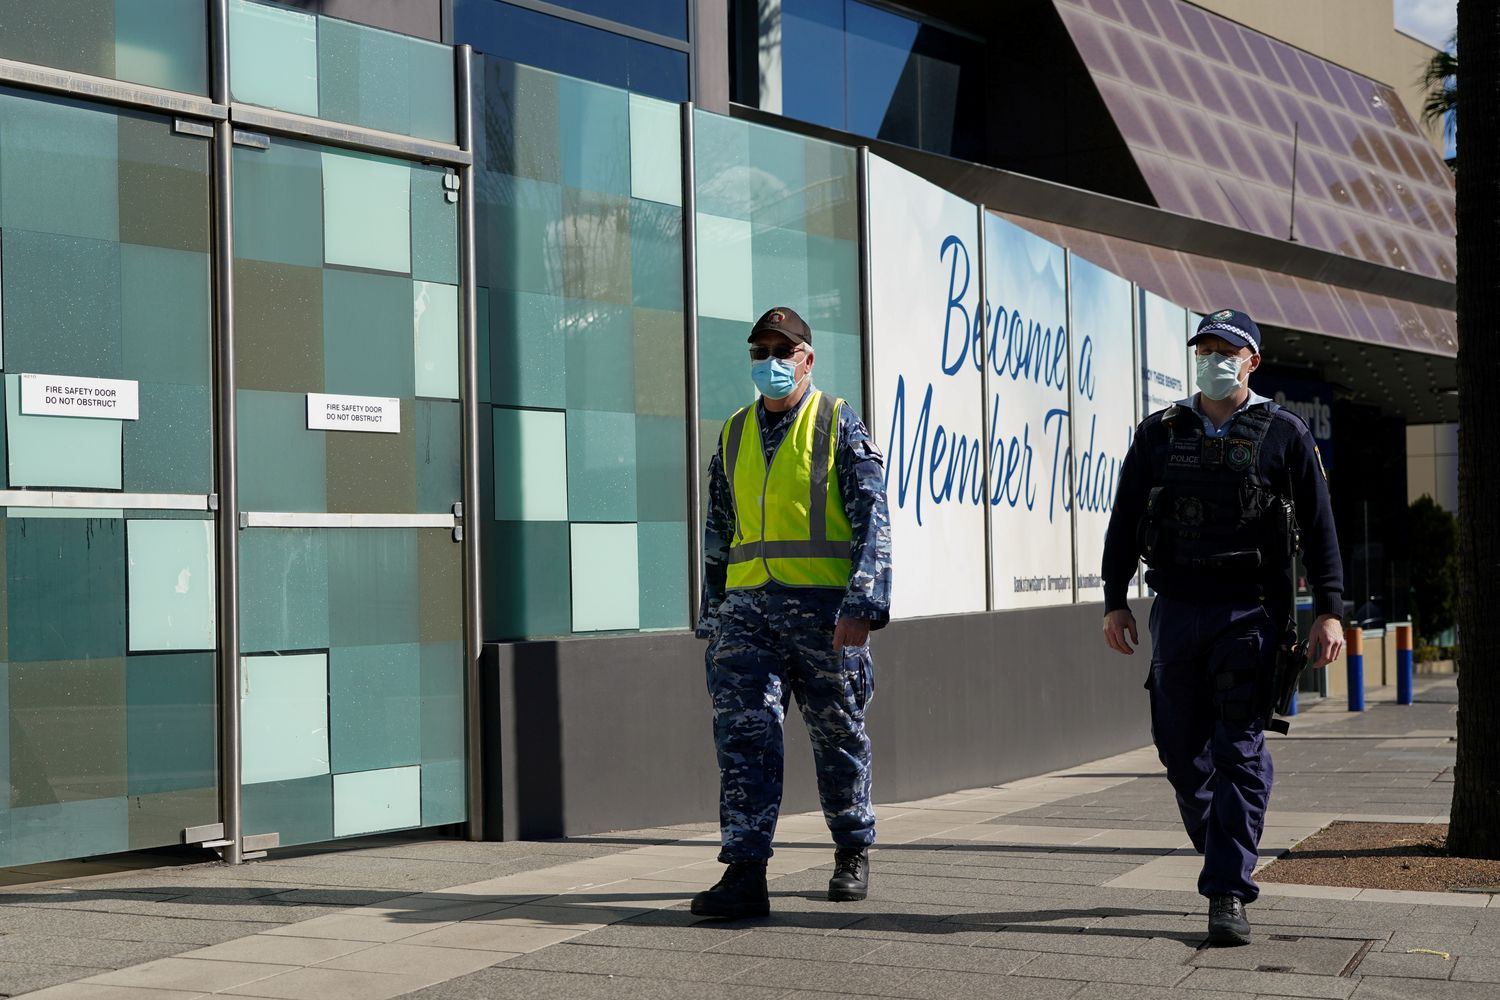 Australia tests facial recognition software to police Covid rules